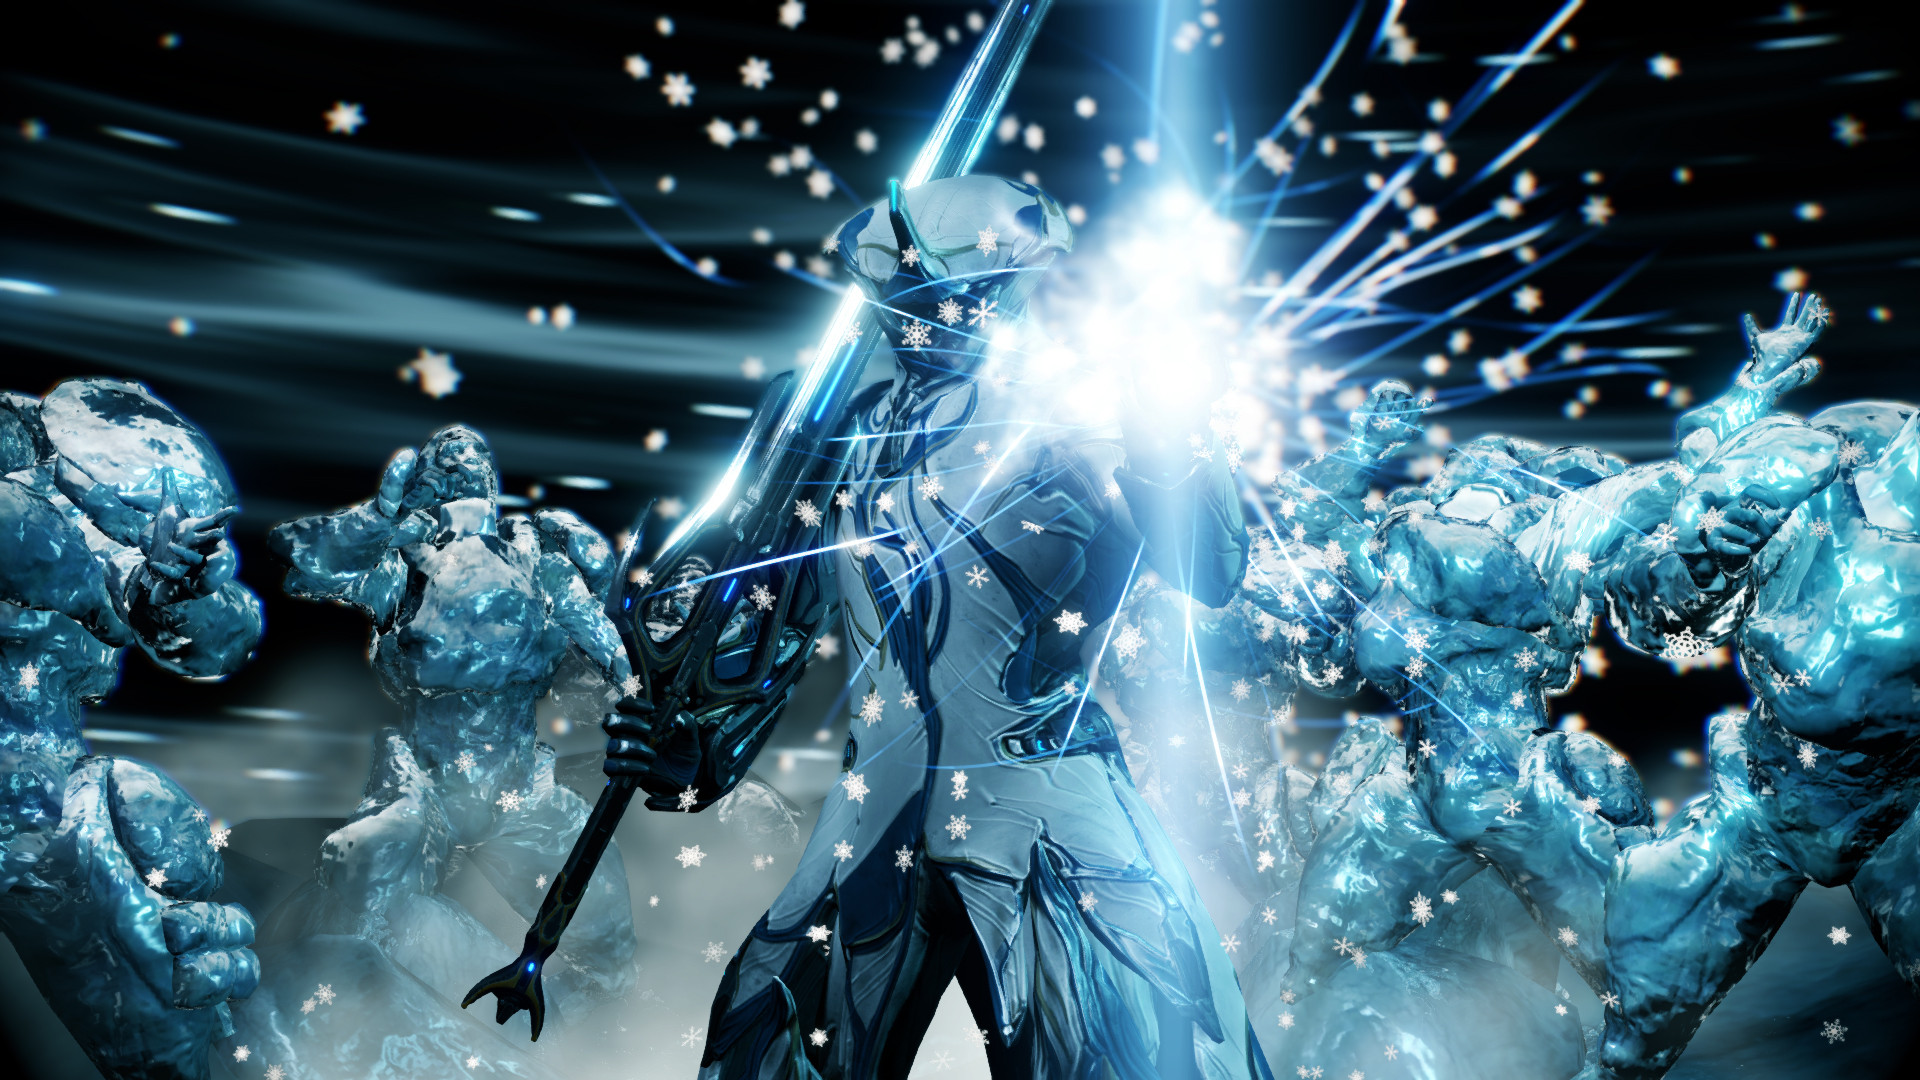 Frost-Warframe-codex-entry-×-wallpaper-wp5206827